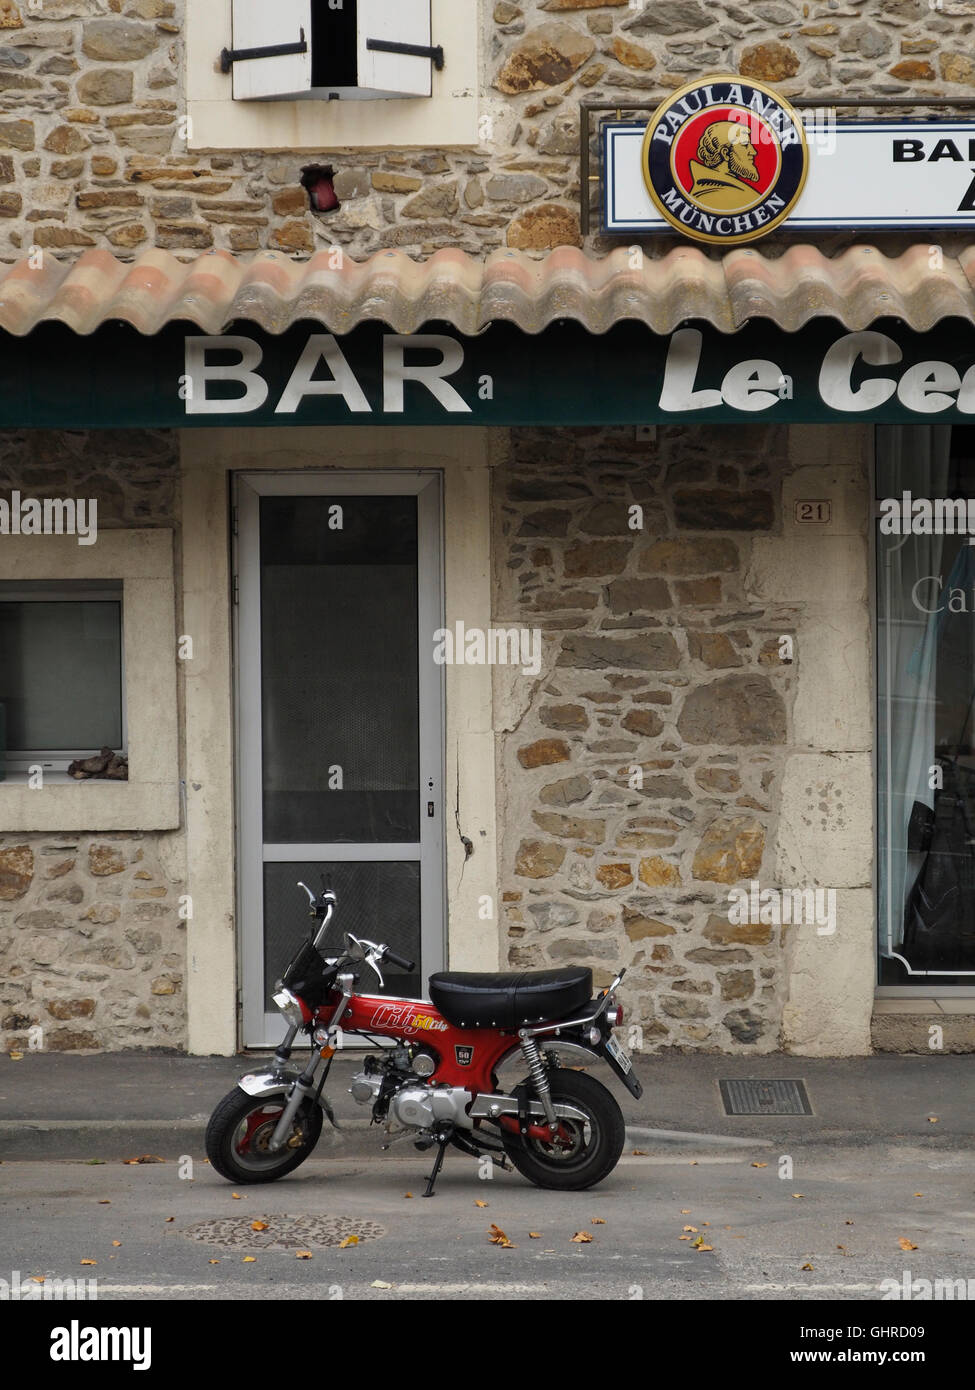 cult Honda 50cc minibike parked in front of a cafe in Conilhac, Languedoc Roussillon, southern France - Stock Image